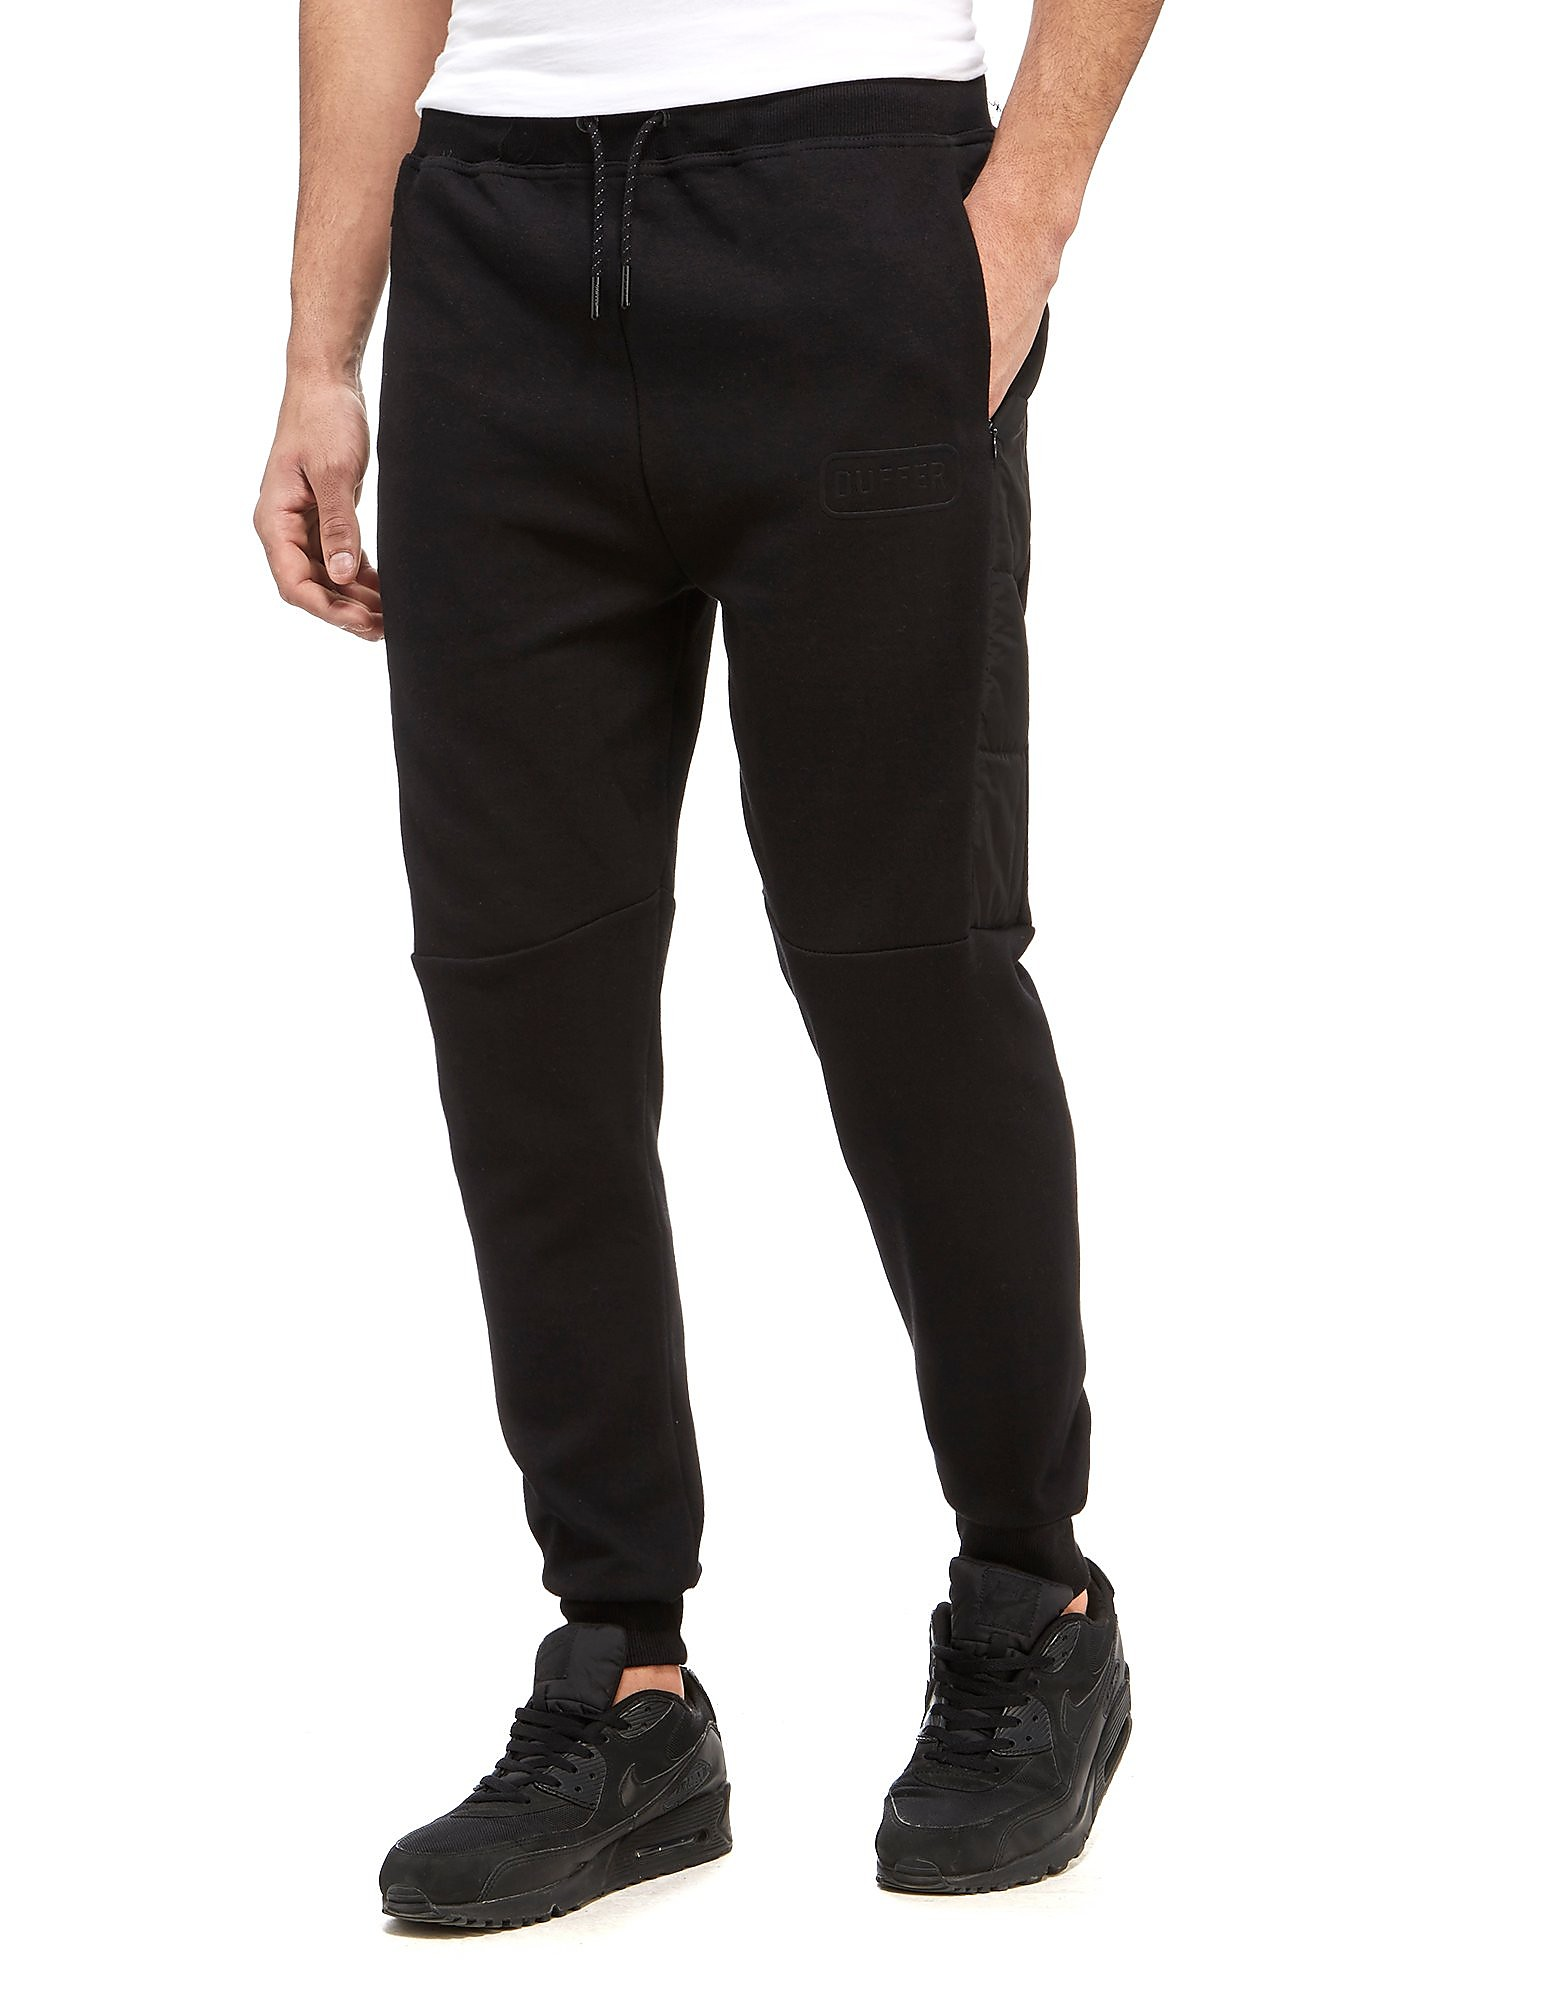 Duffer of St George Tenor Jogging Pants